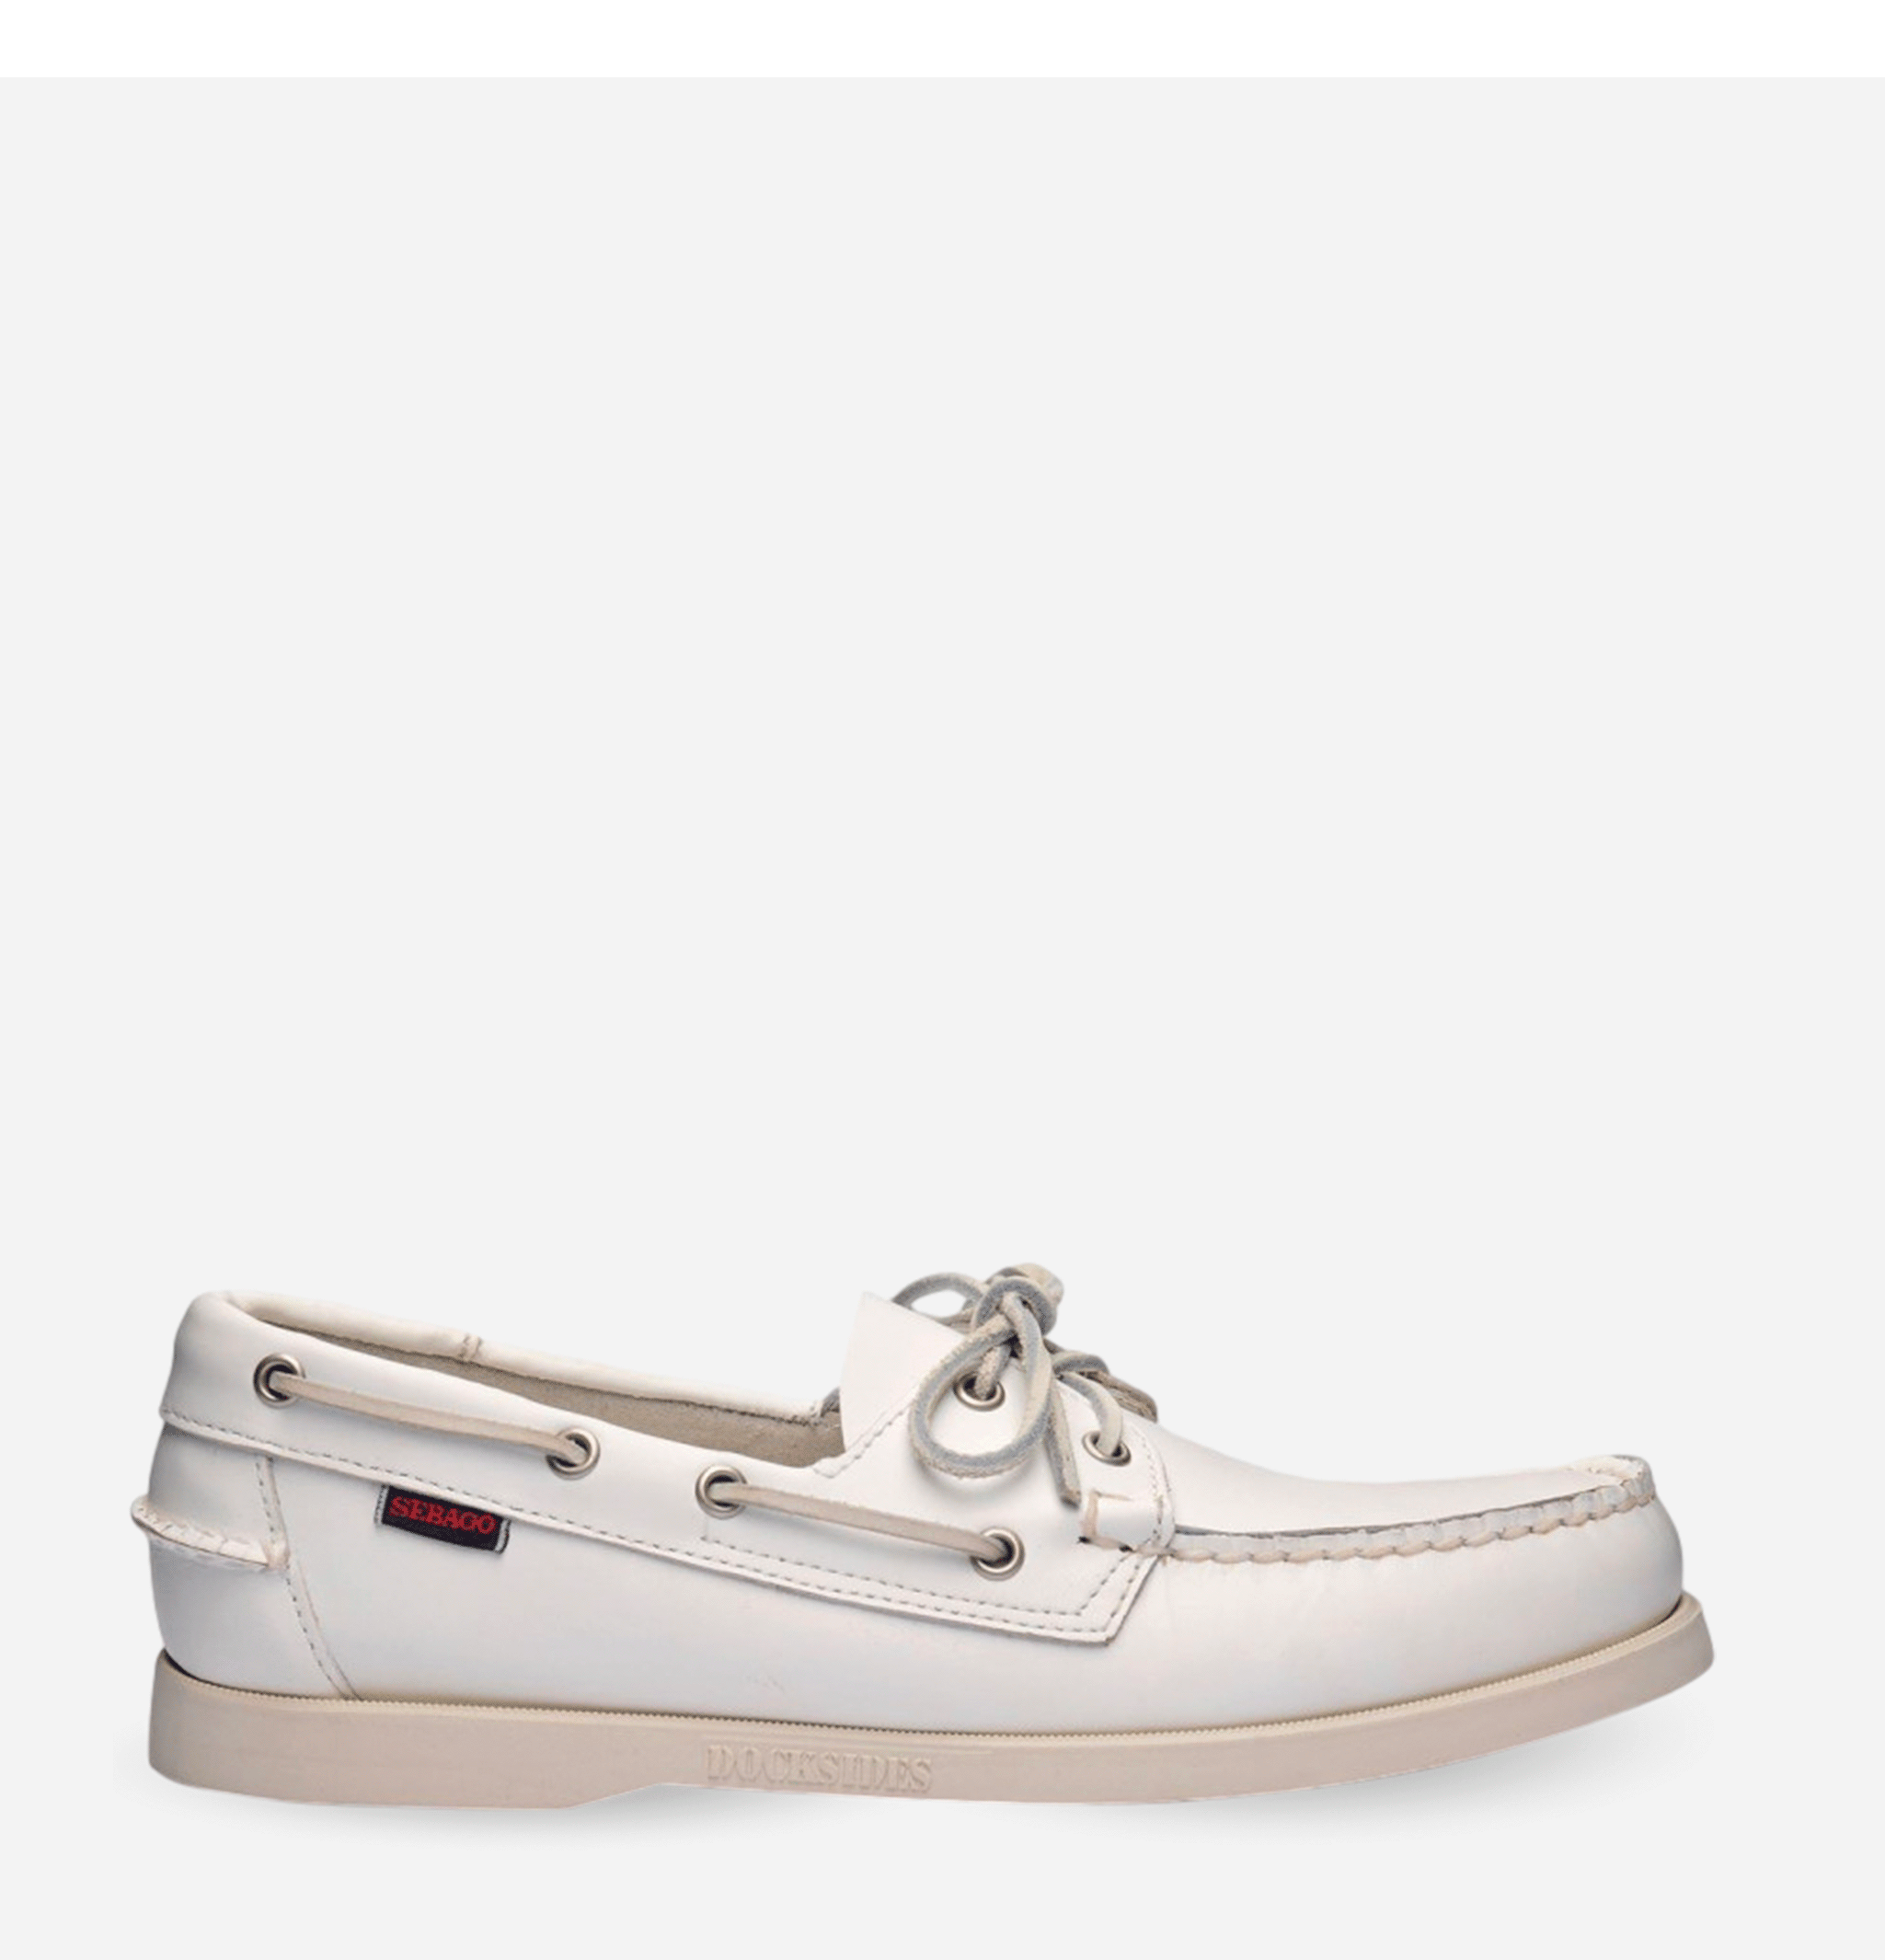 Docksides Shoes White